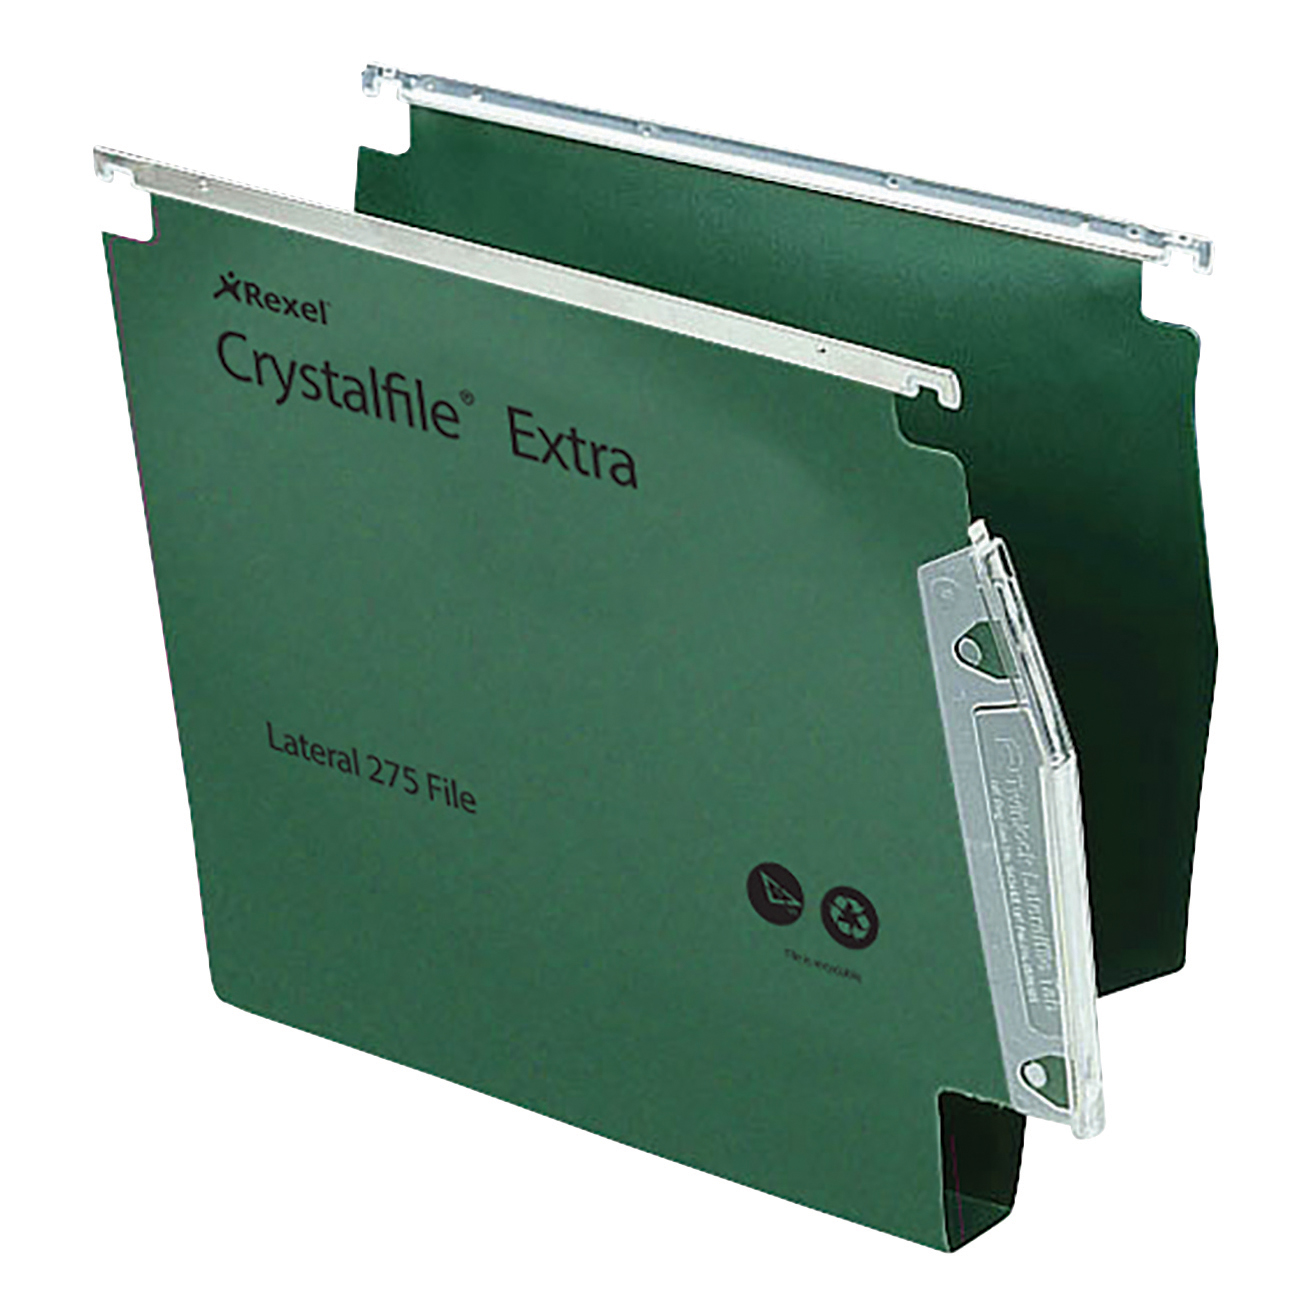 Rexel Crystalfile Extra Lateral File Polypropylene 30mm Wide-base A4 Green Ref 70640 Pack 25